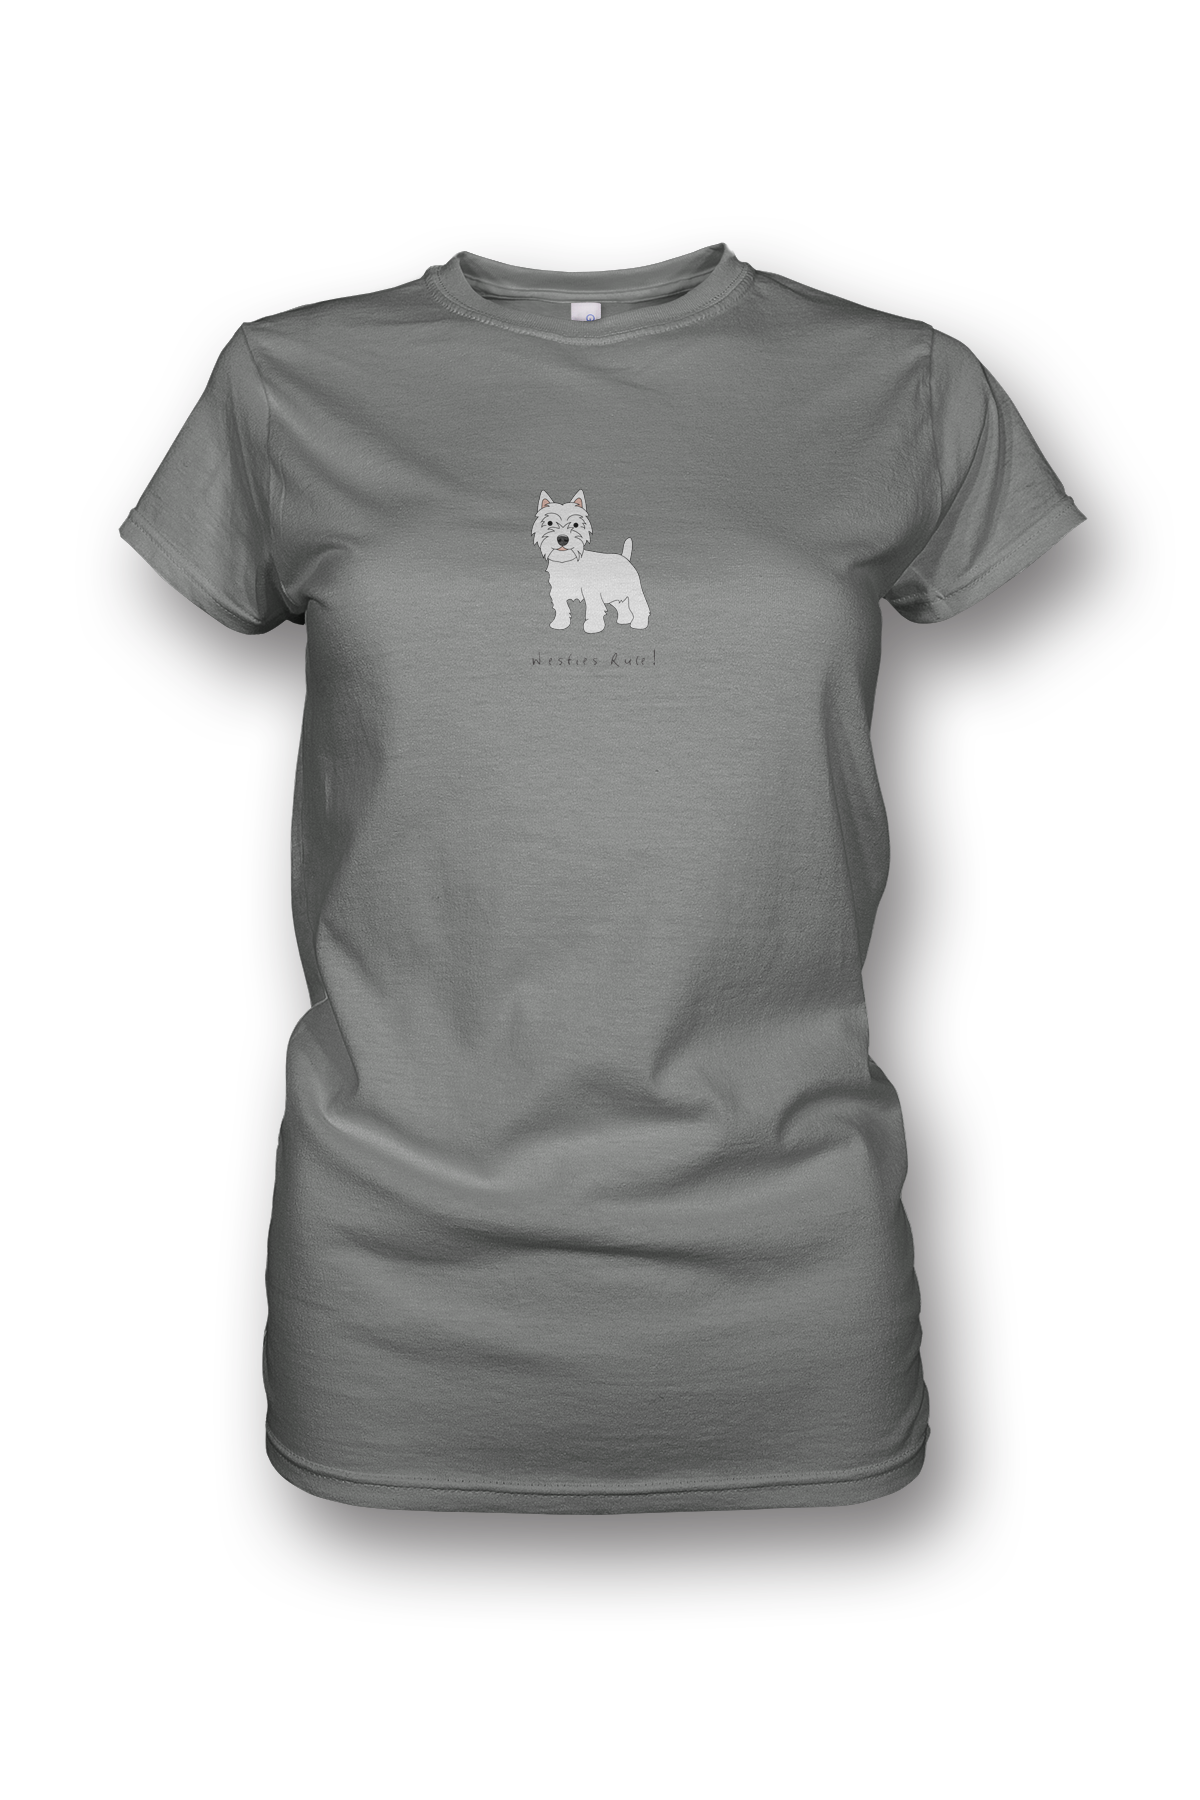 Ladies Crew Neck T-Shirt - Westies Rule! Heather Grey